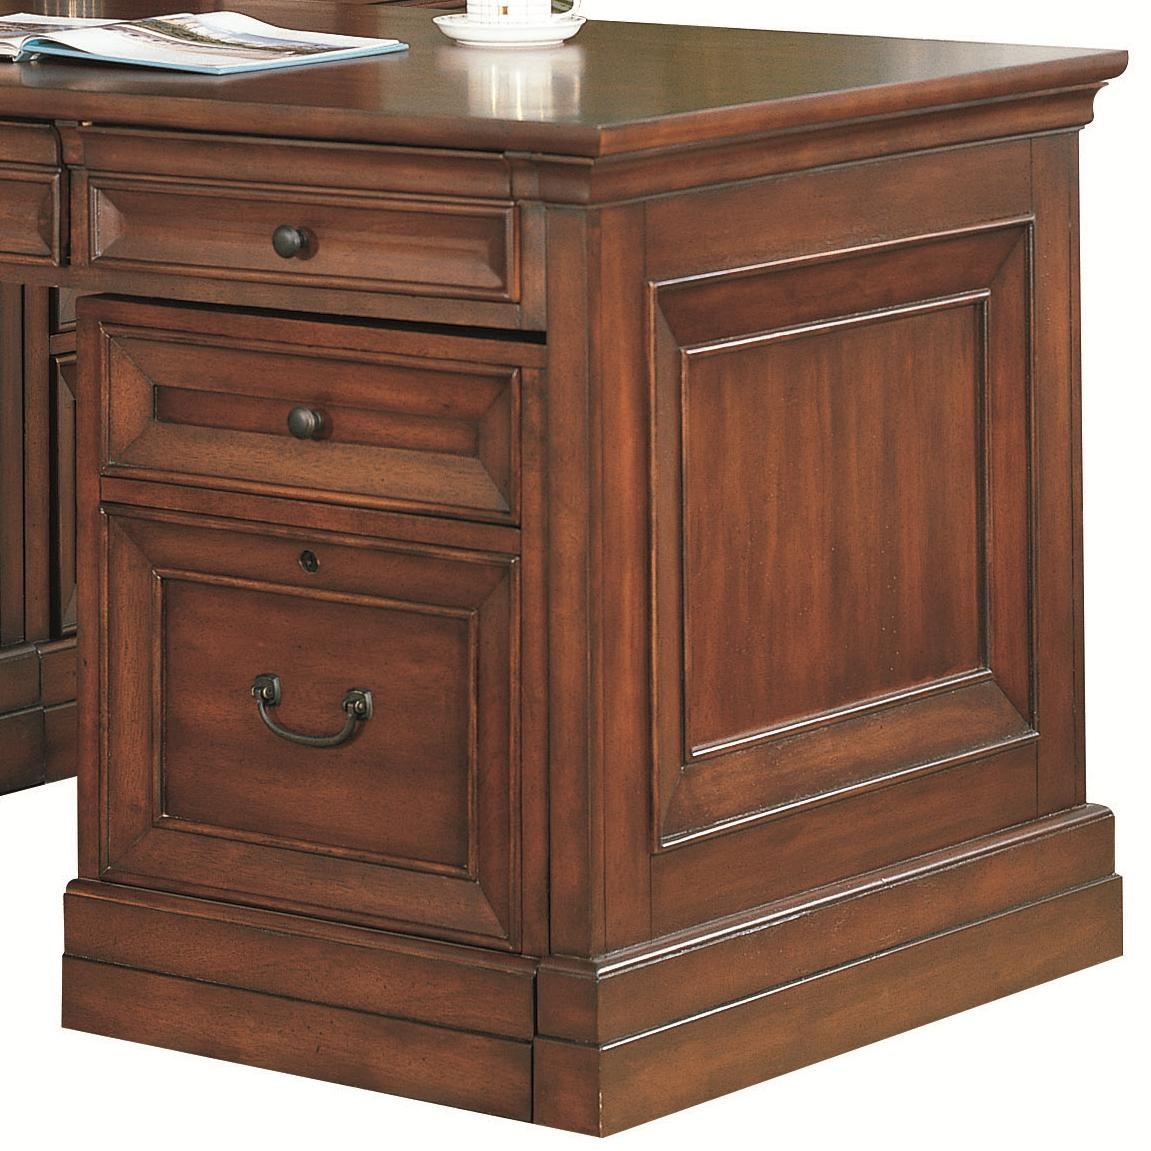 Richmond Drawer Unit by Aspenhome at Stoney Creek Furniture